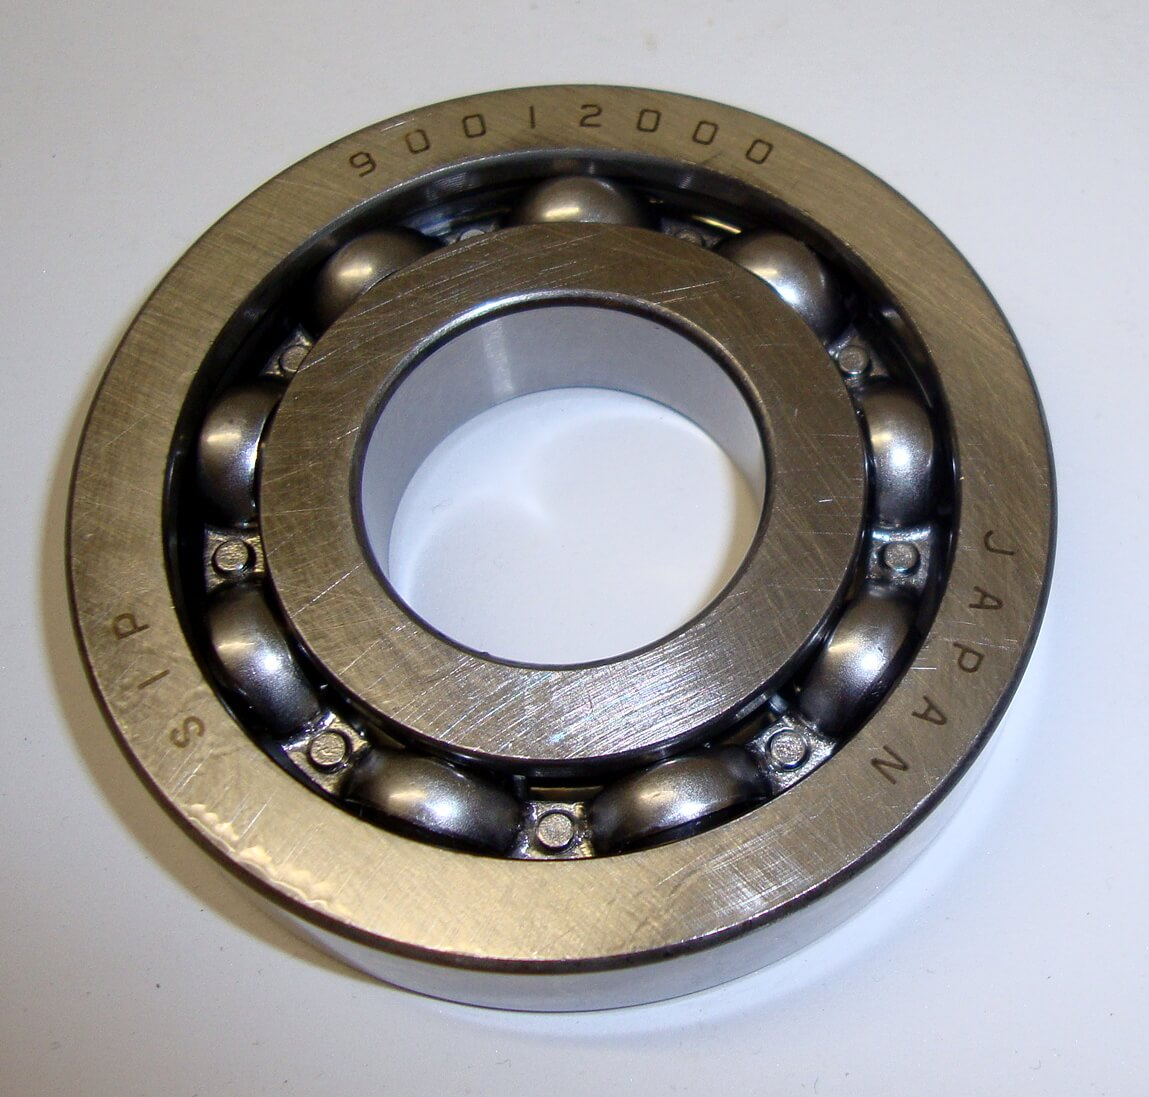 Bearing for crankshaft, SIP, Vespa 80 / 125 / 150 / 180 / 200, SIP